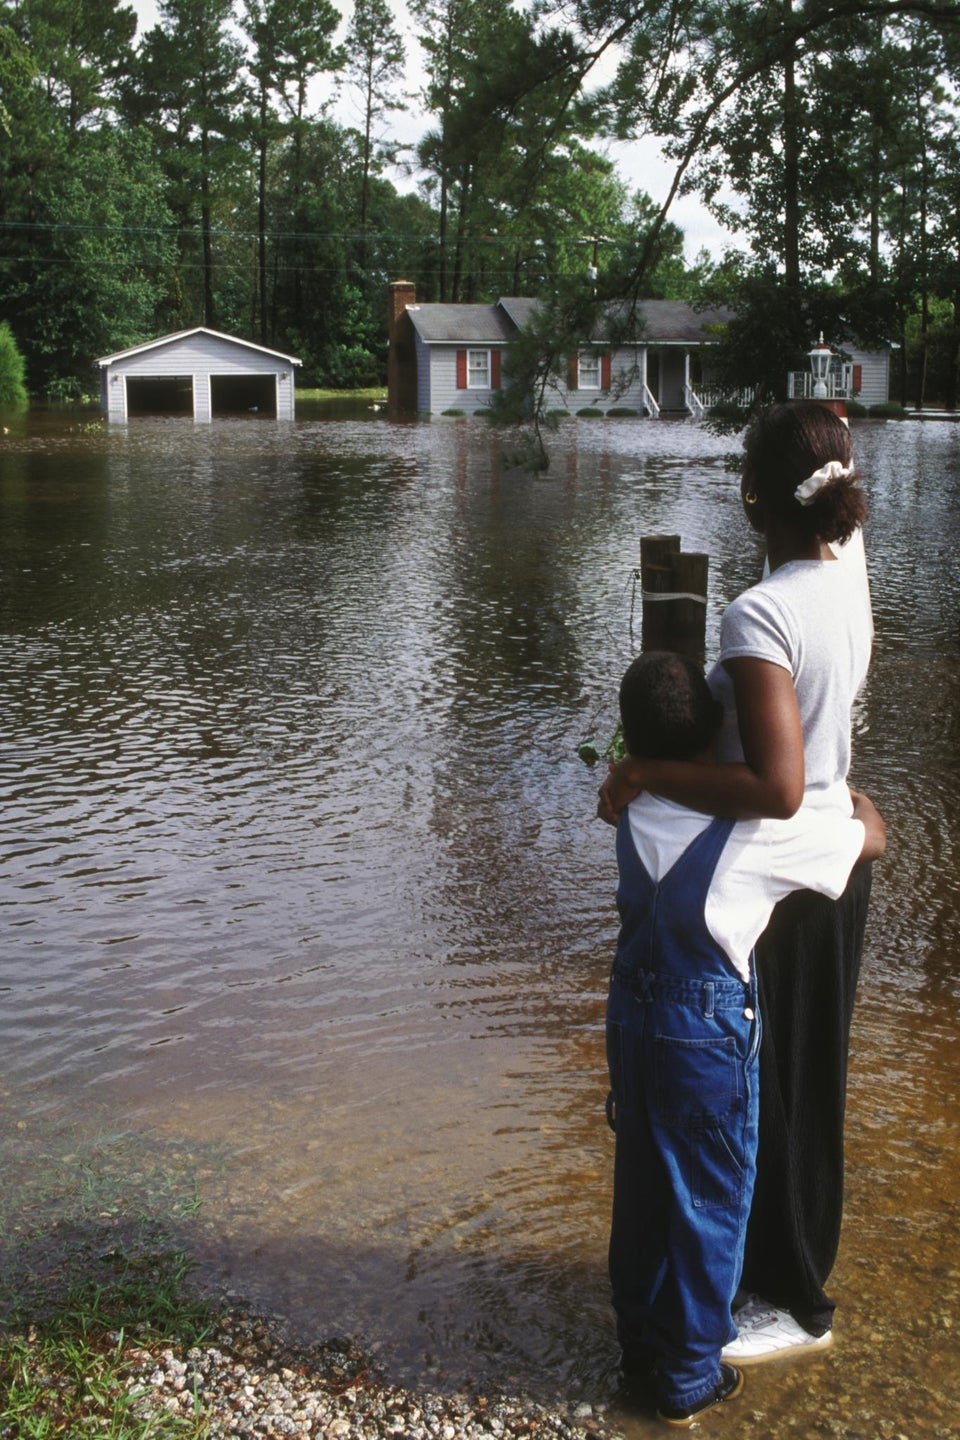 ESSENCE Poll: How Prepared Are You For A Natural Disaster?